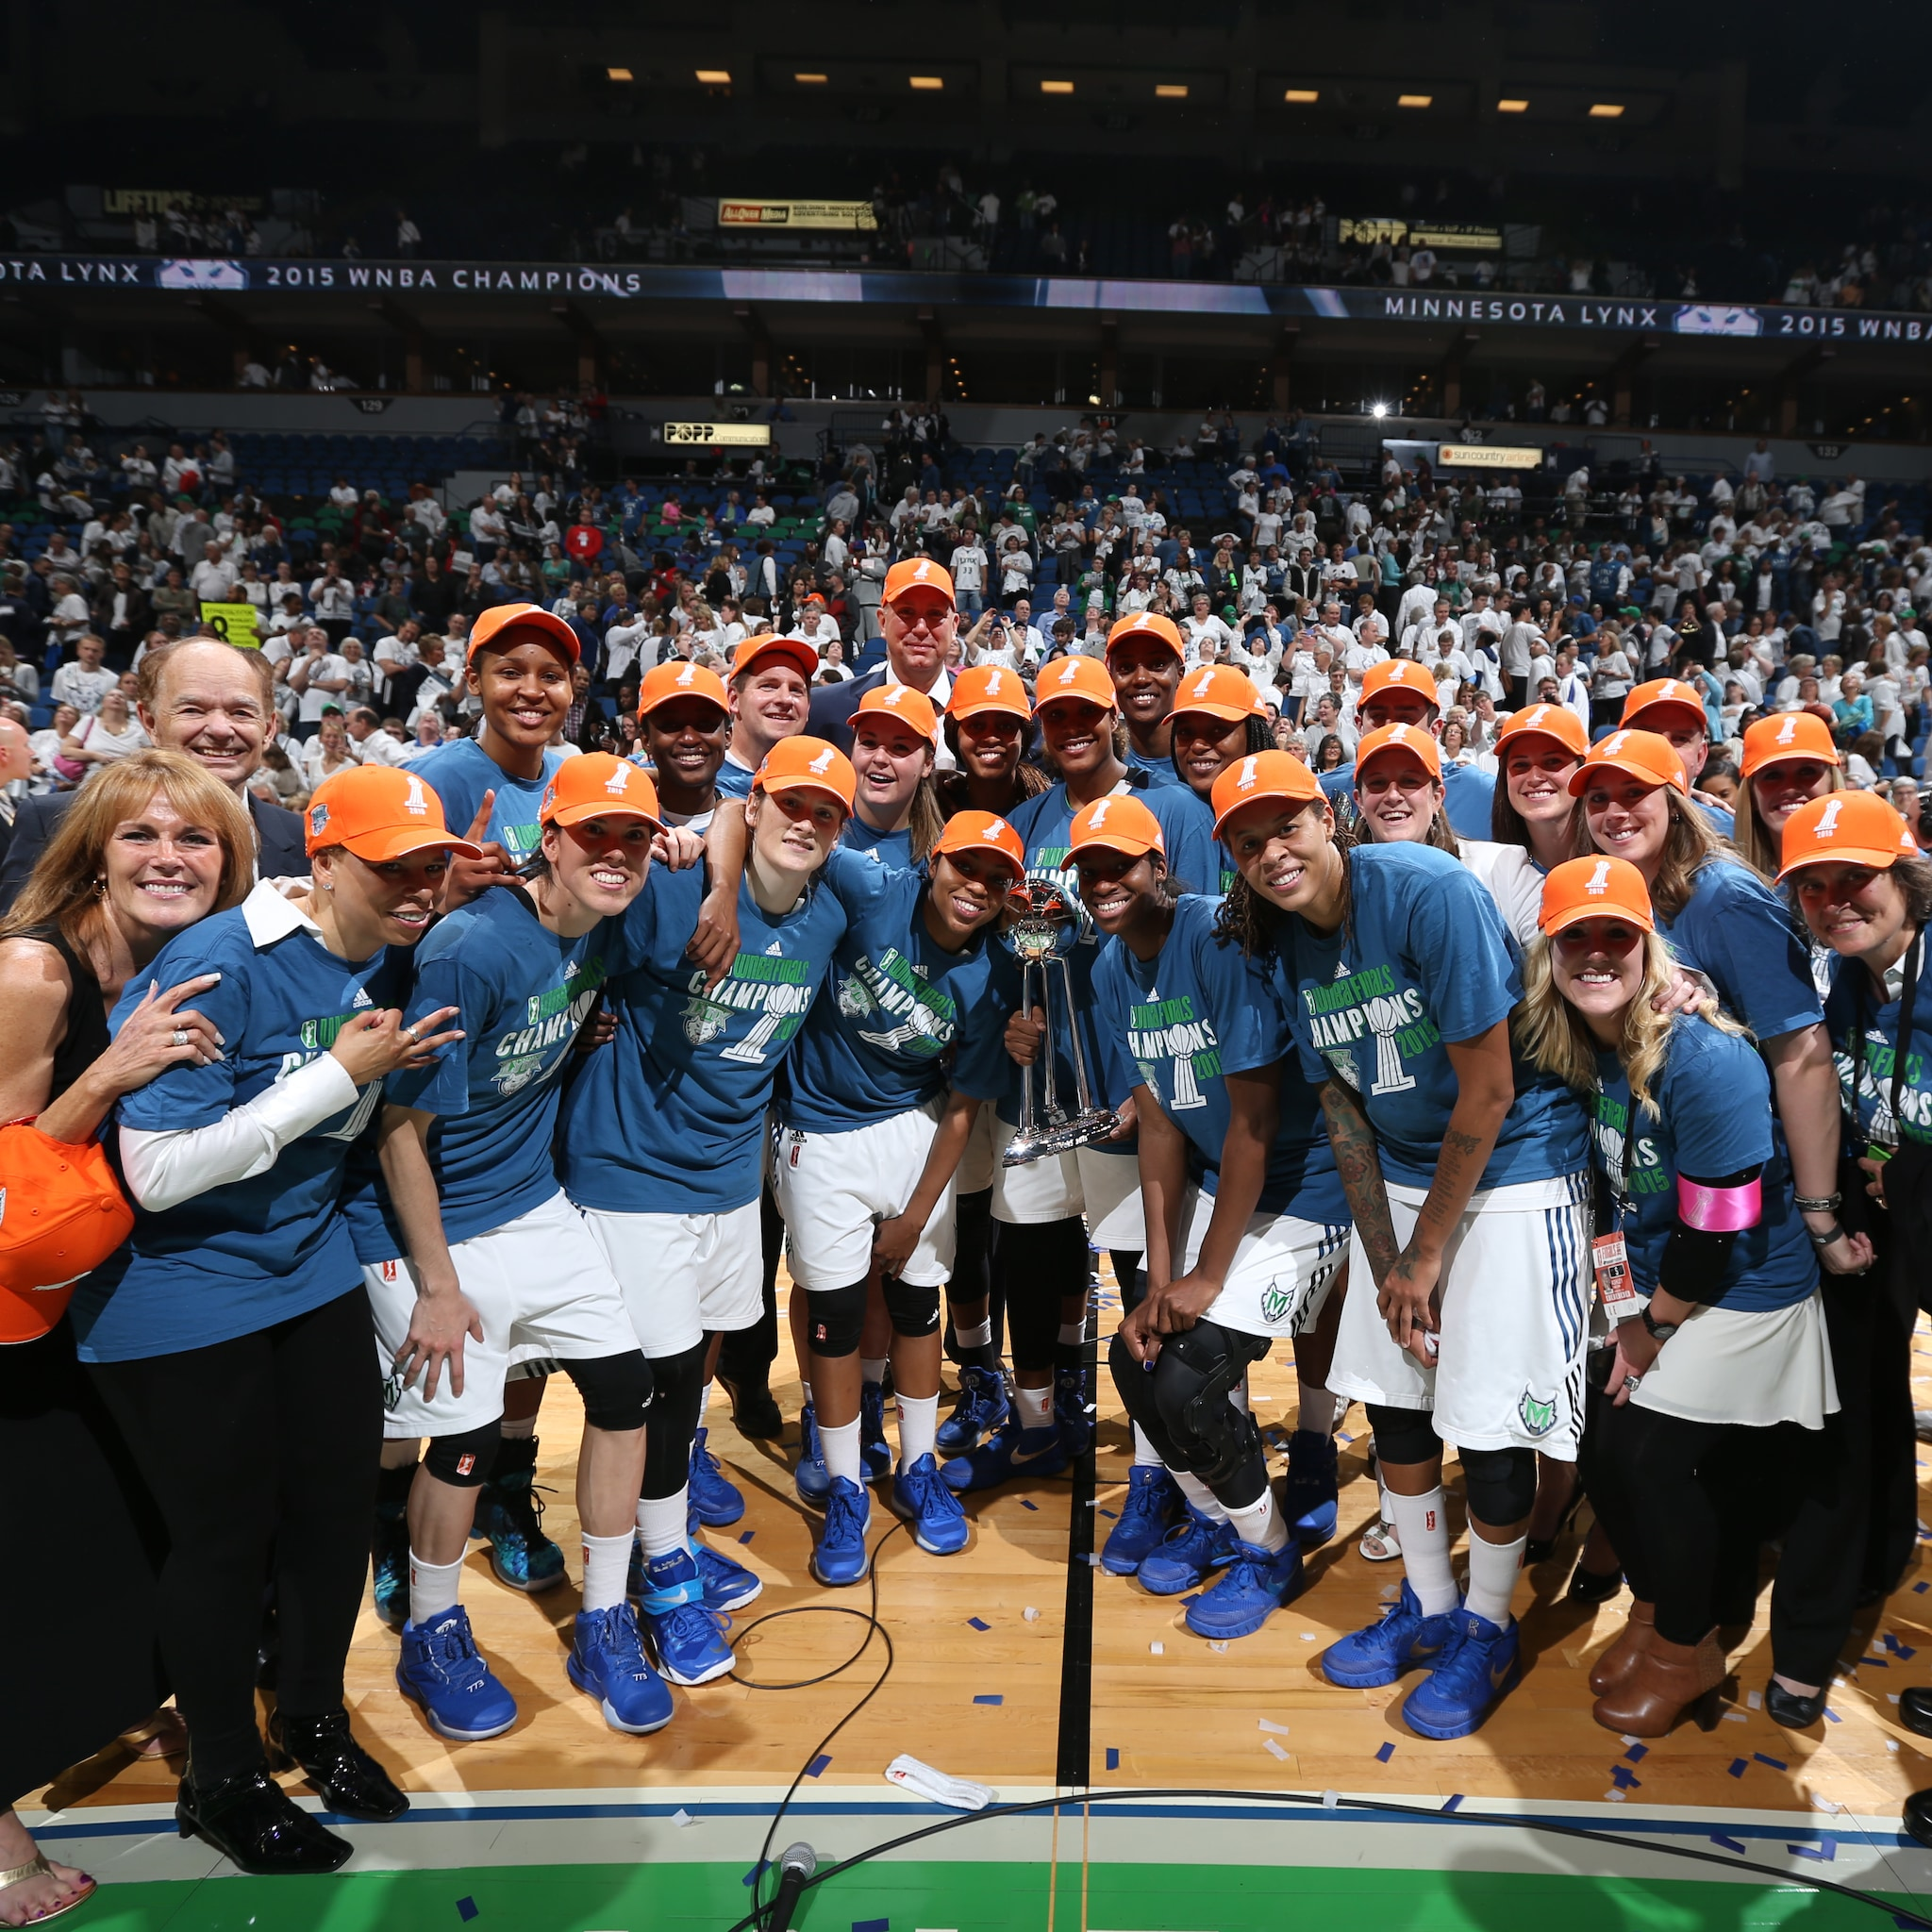 Game 5 2015 WNBA Finals Indiana Fever v Minnesota Lynx